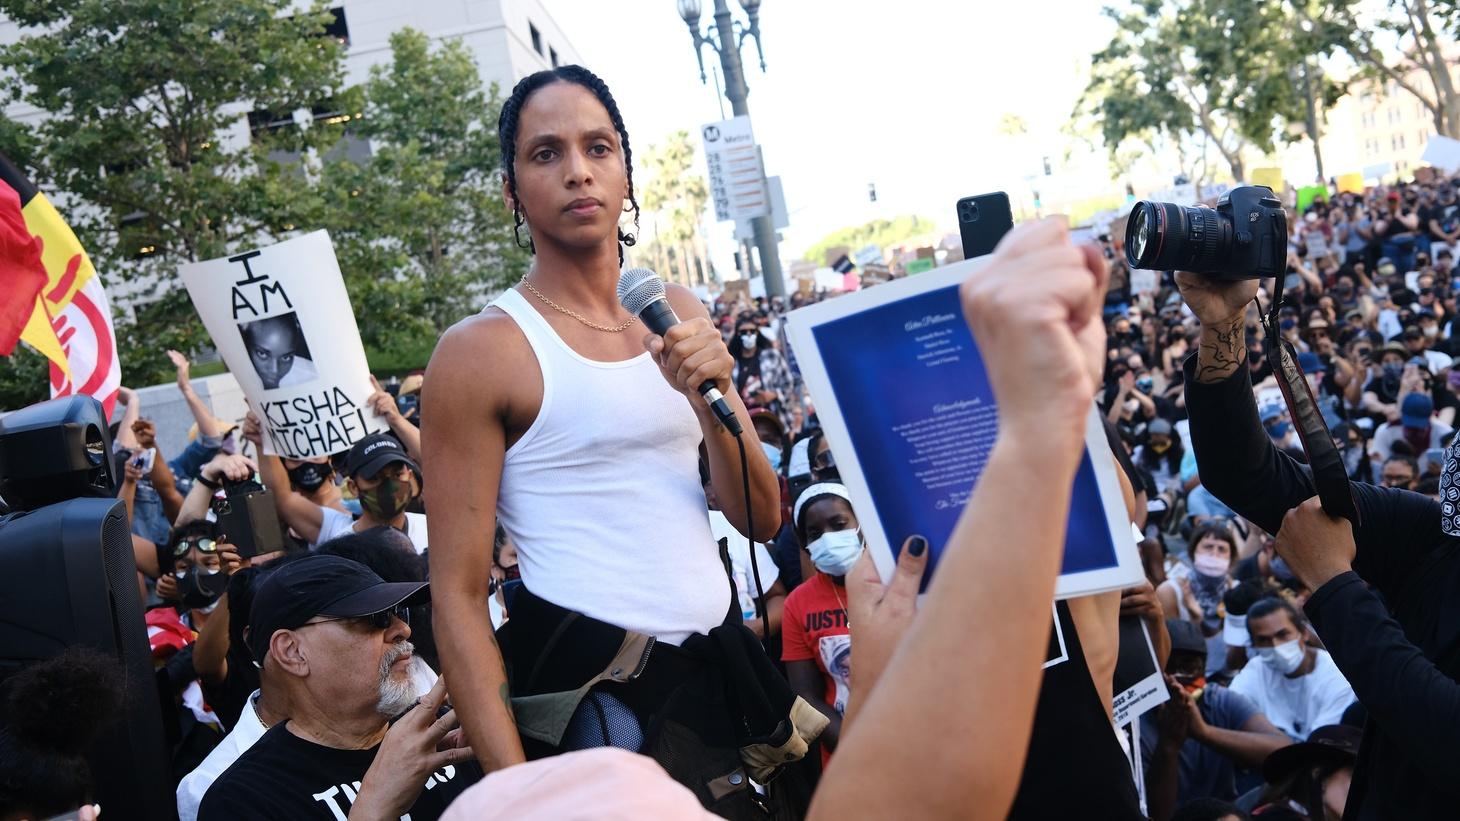 An activist speaks to demonstrators organized by Black Lives Matter LA. The rally was in front of the Los Angeles County Hall of Justice to protest District Attorney Jackie Lacey. About 10,000 Angelenos protested police violence, the proposed LA city budget, and the death of George Floyd. June 3, 2020.